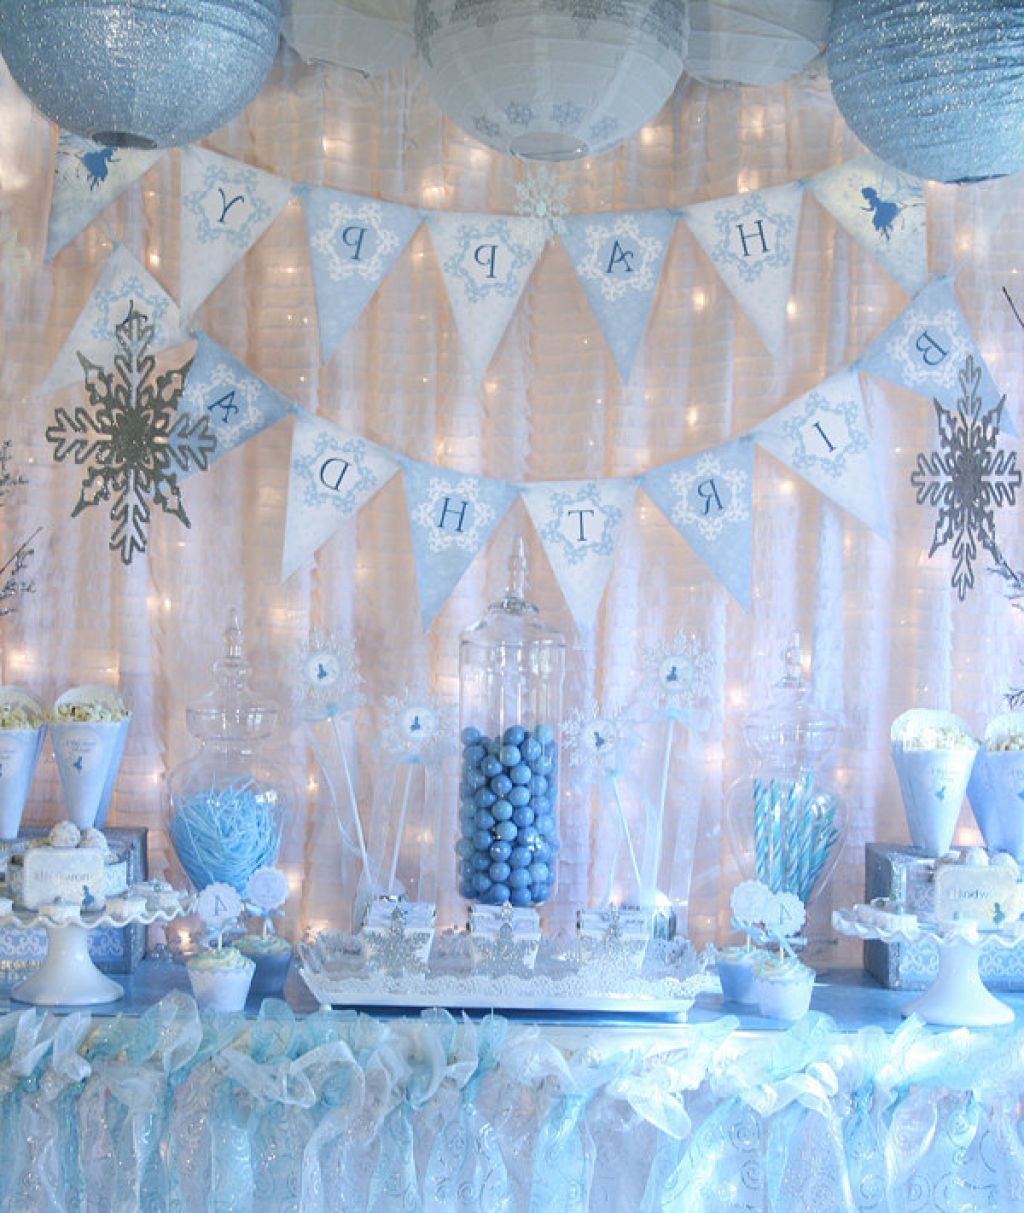 Frozen Themed Party Decoration Ideas Part - 25: Frozen Party Decoration Ideas - Google Search